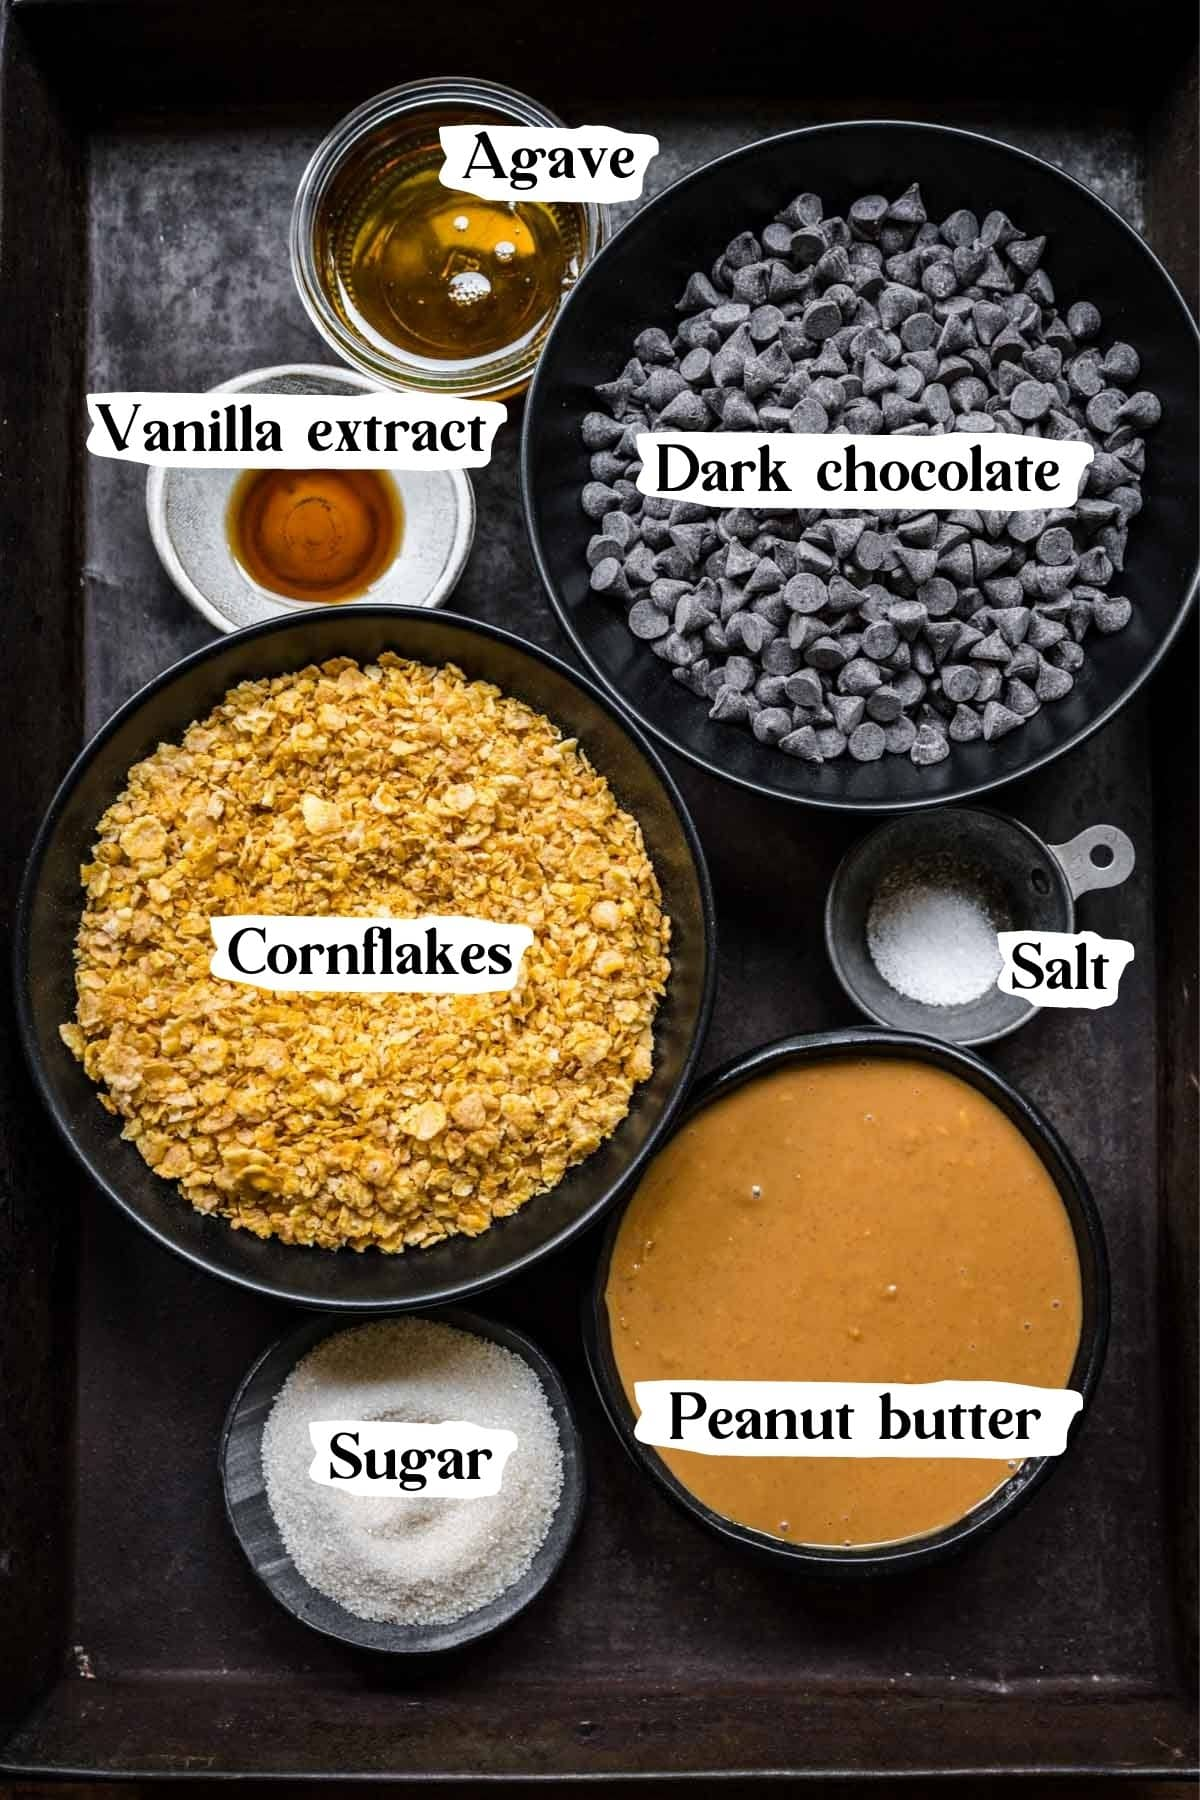 Overhead view of all vegan butterfinger ingredients, including chocolate and cornflakes.